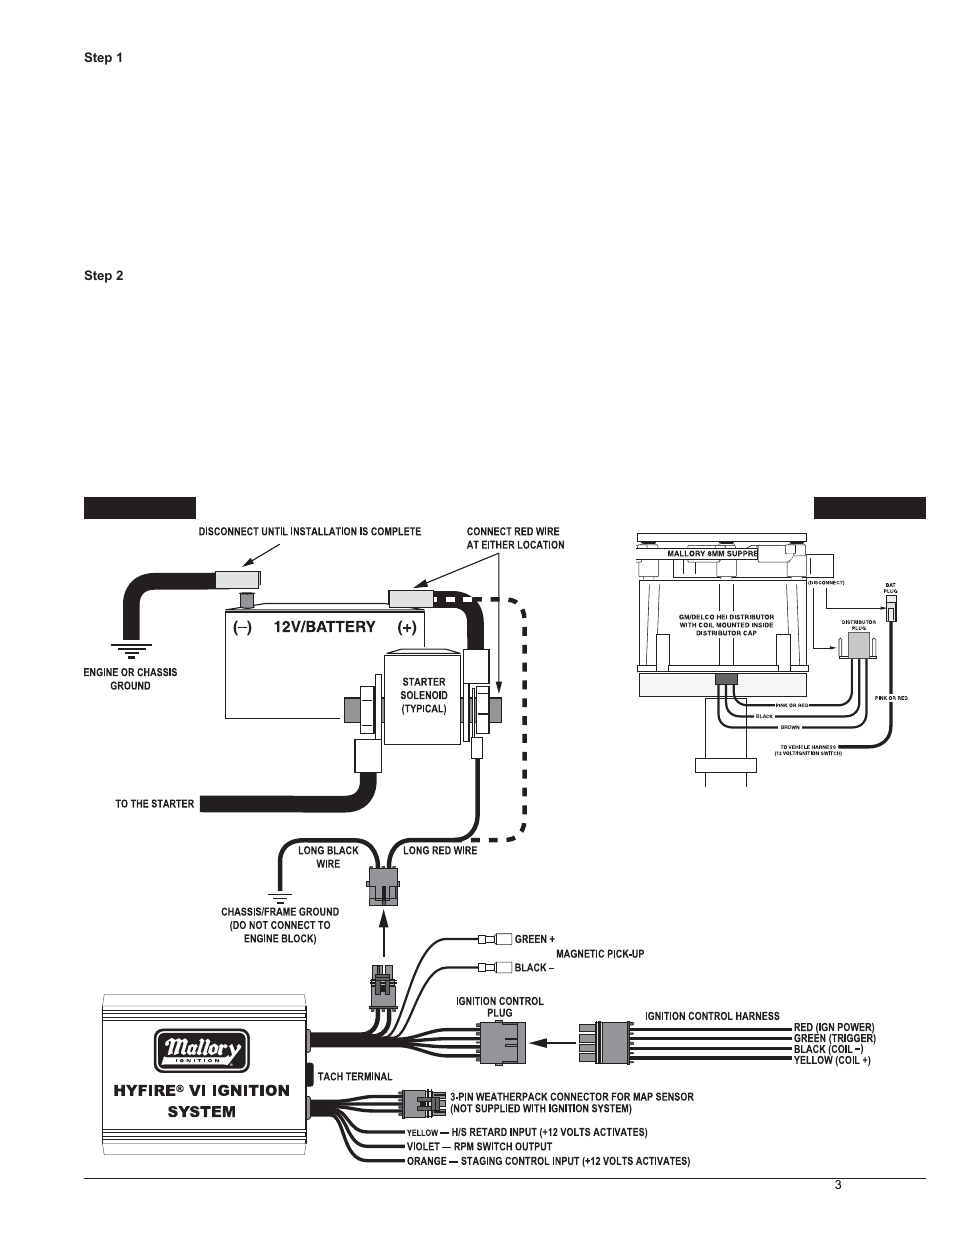 medium resolution of basic wiring procedure mallory ignition mallory hyfire vi series warn winch wiring diagram basic wiring procedure